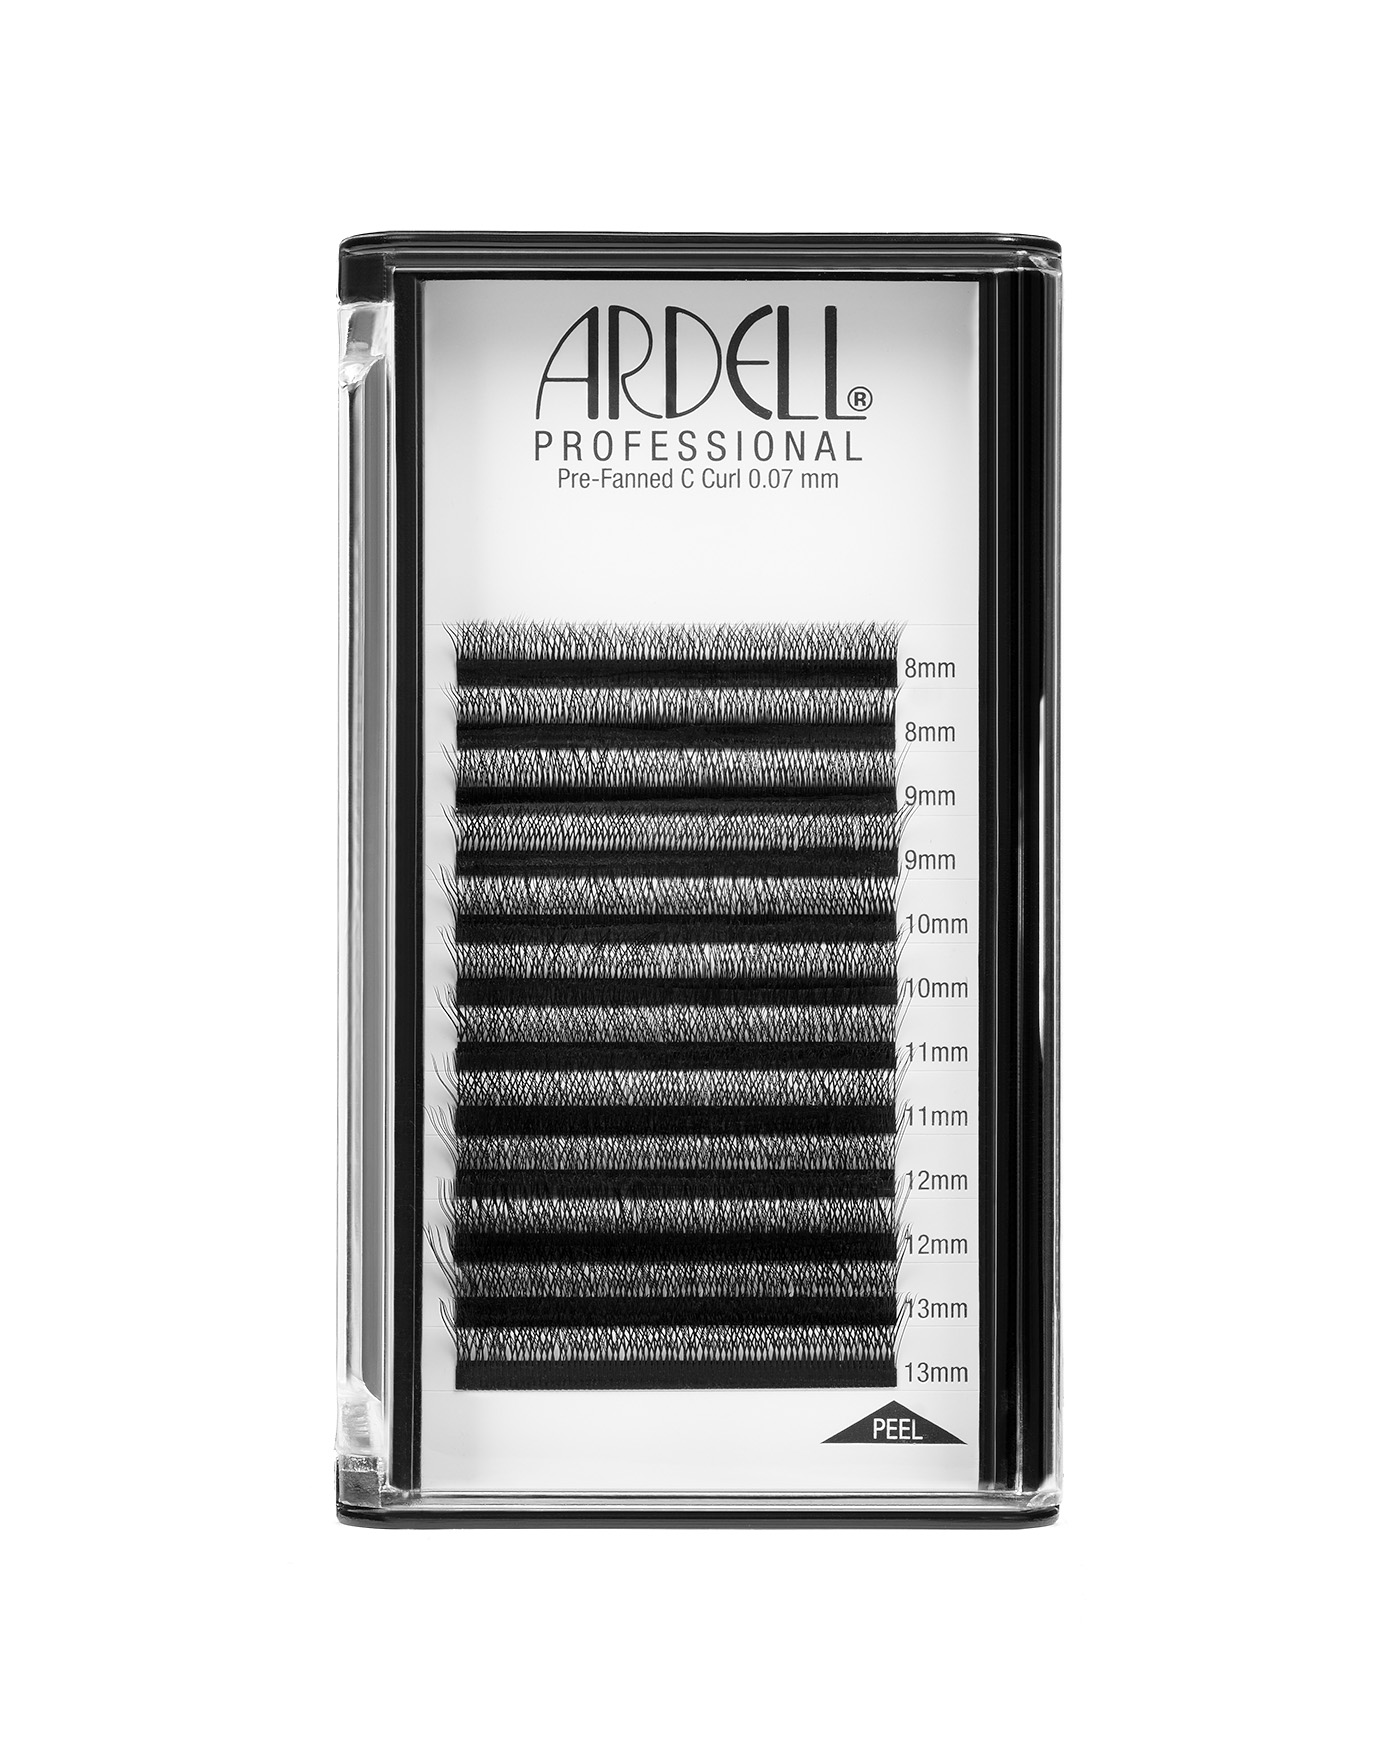 Ardell Professional Individual Lash Extensions Pre-Fanned (0.07mm) - C Curl, Assorted Multi-length, 8-13mm Pack